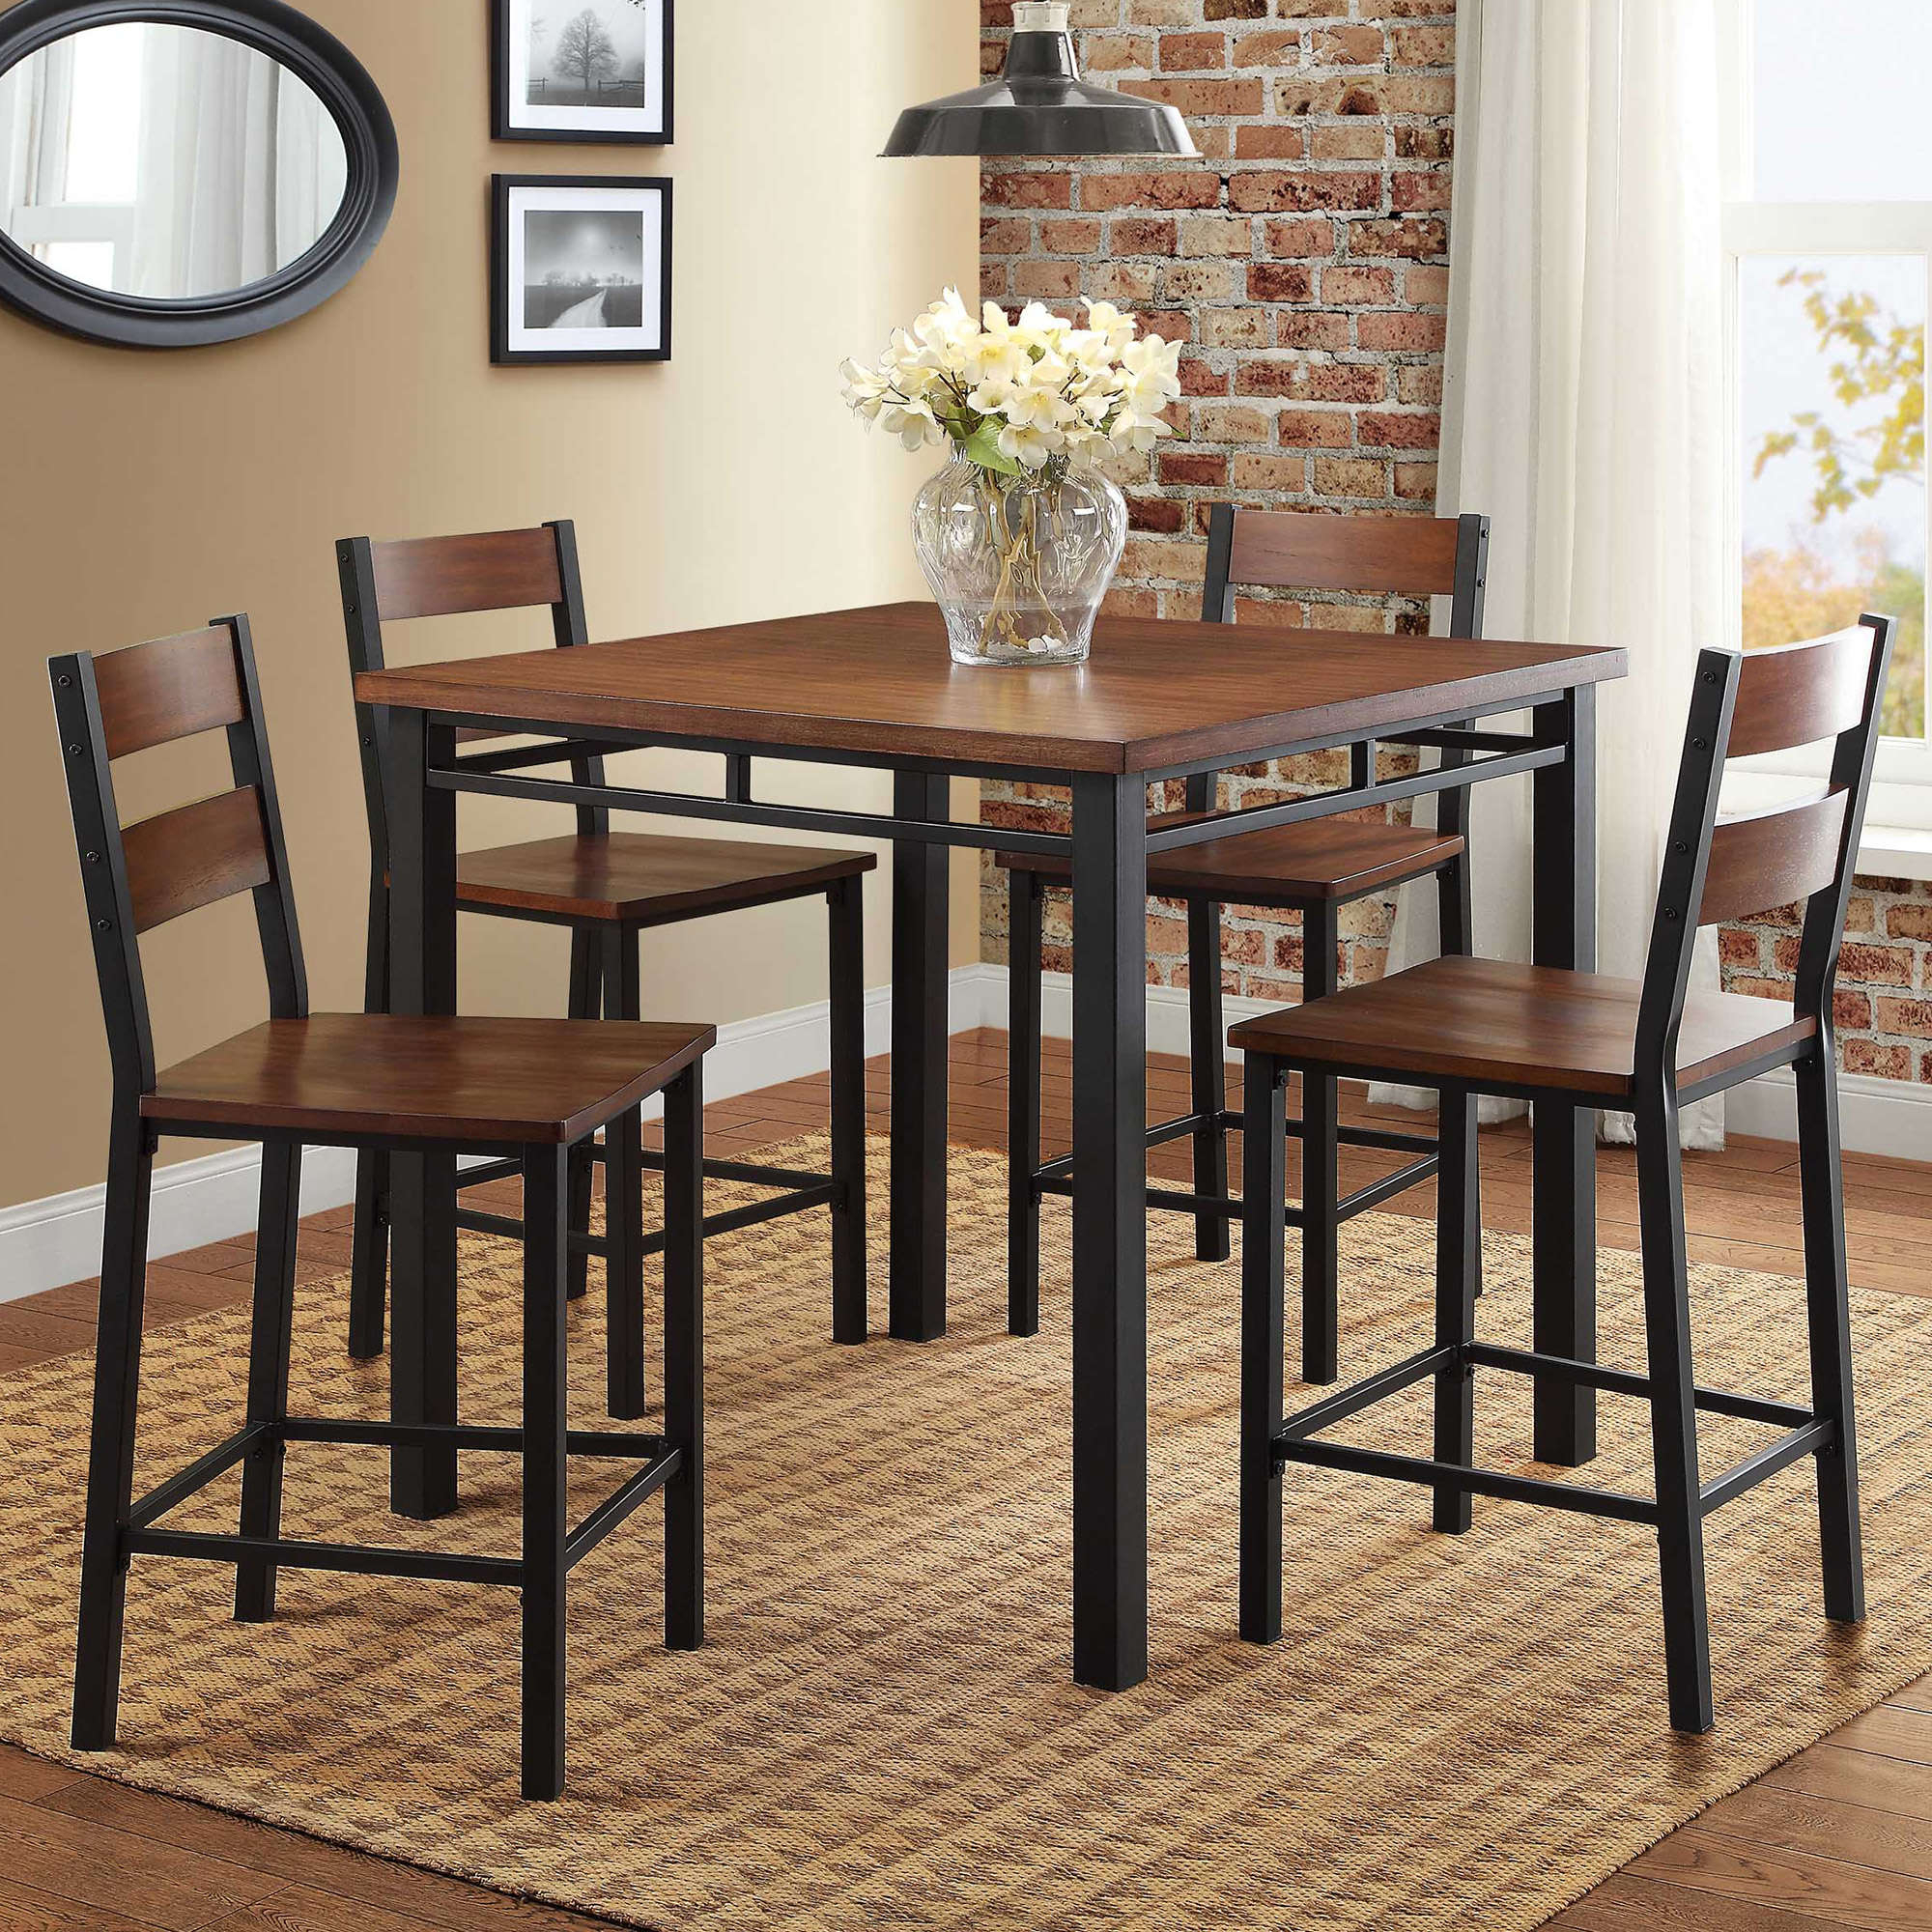 Amazon Kitchen Table – Martinique Pertaining To Most Up To Date Salvaged Black Shayne Drop Leaf Kitchen Tables (View 18 of 25)